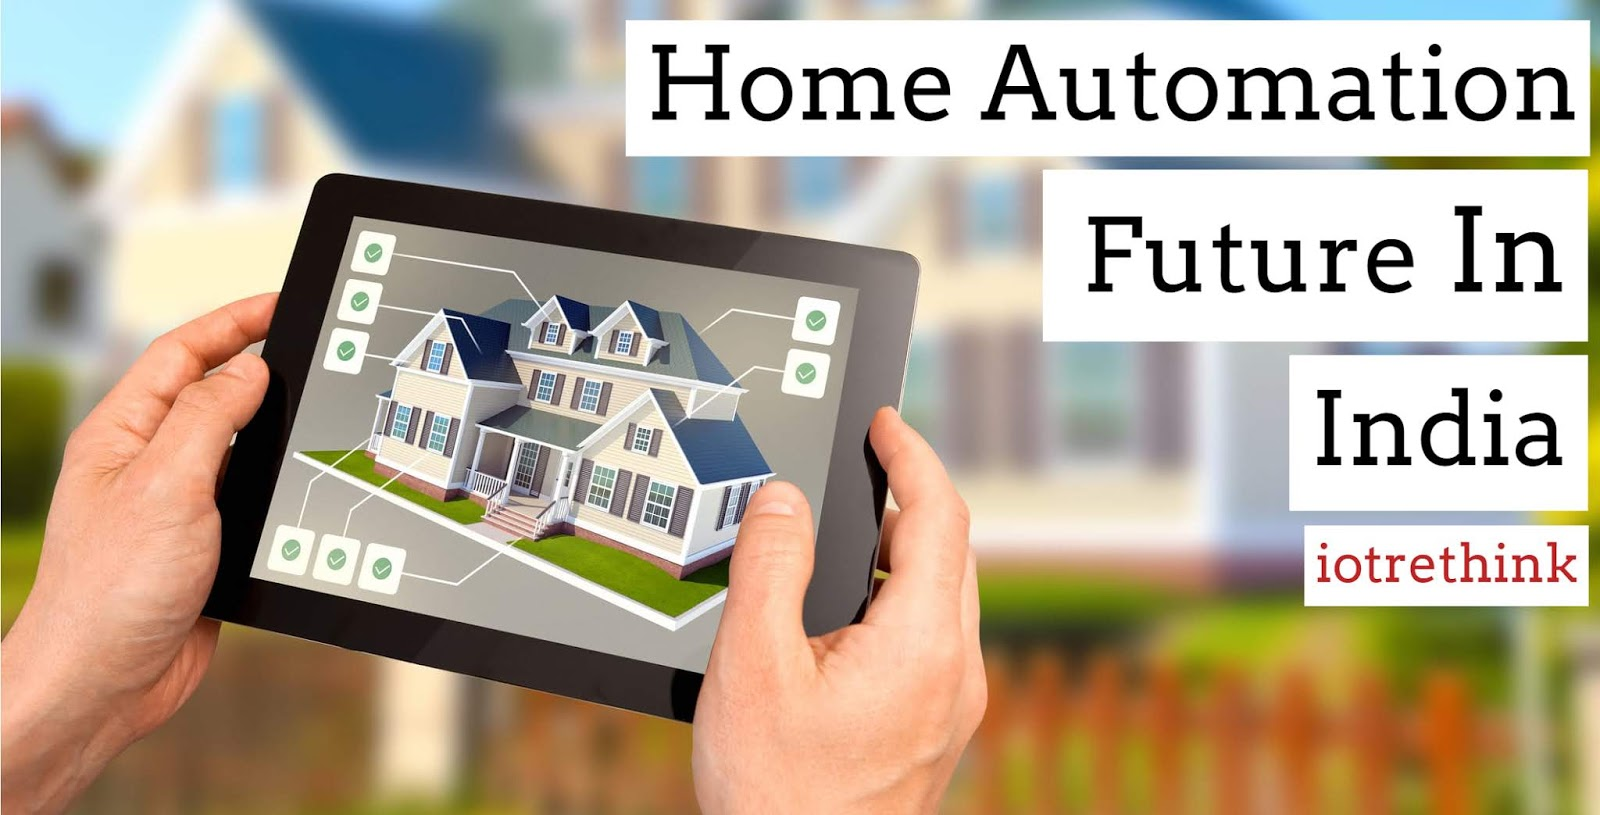 Future of Home Automation In India